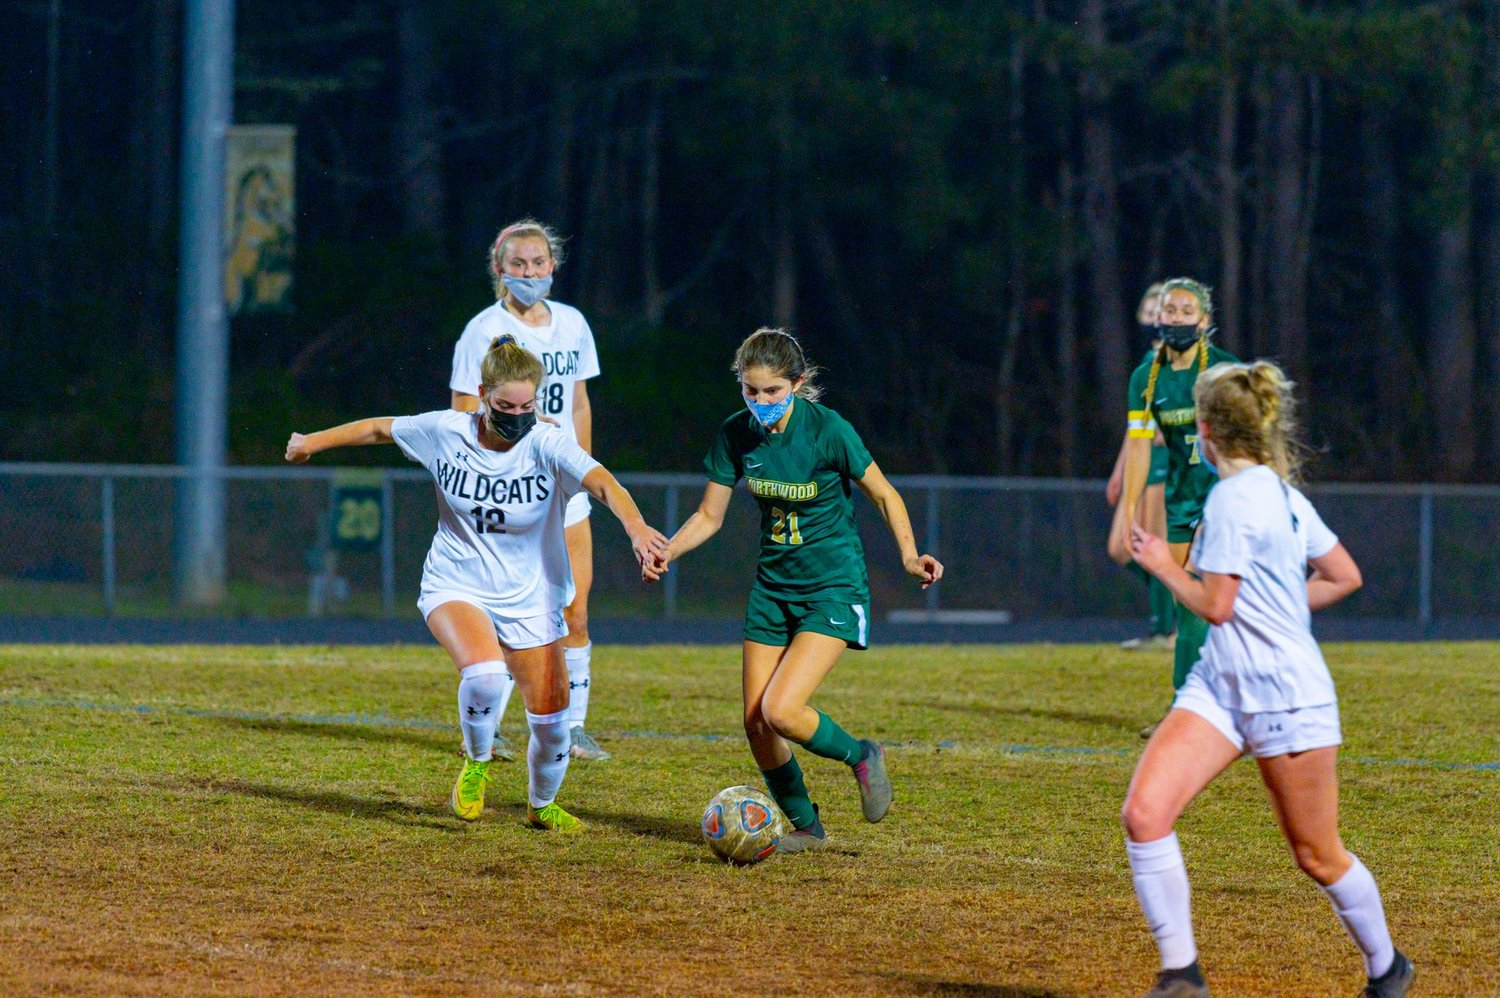 Northwood freshman midfielder Ava Arias dribbles past East Chapel Hill's Stewart Jones during her team's 2-0 loss to the Wildcats on March 30 in Pittsboro. Arias leads the Chargers with five goals on the season.